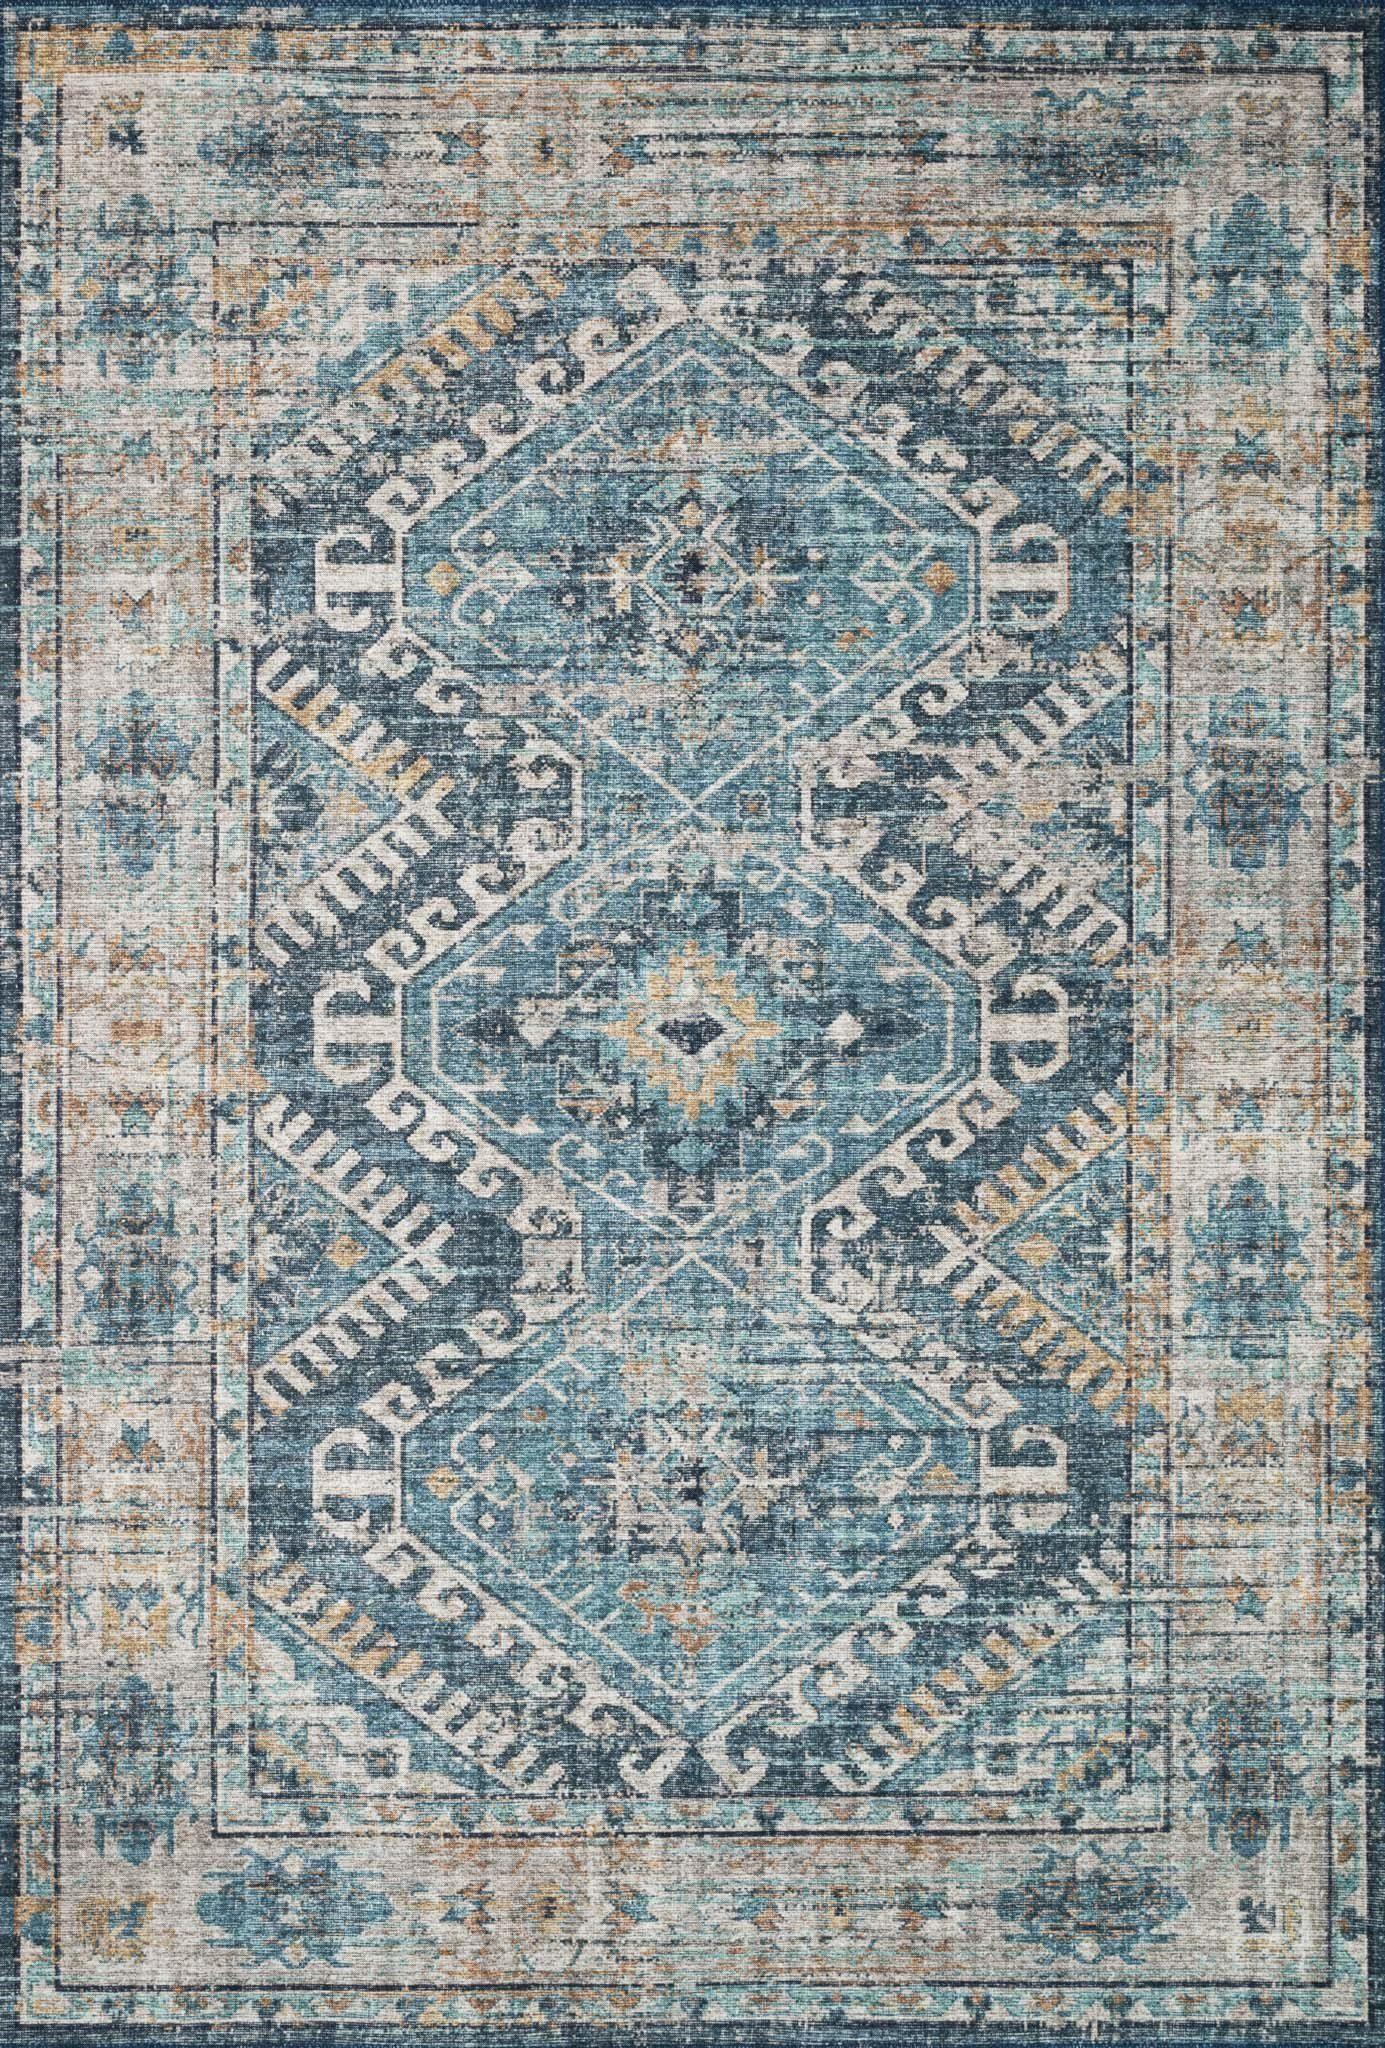 "Skye SKY-03 Denim / Natural Area Rug-Area Rug-Loloi-1'-6"" x 1'-6"" Square-The Rug Truck"